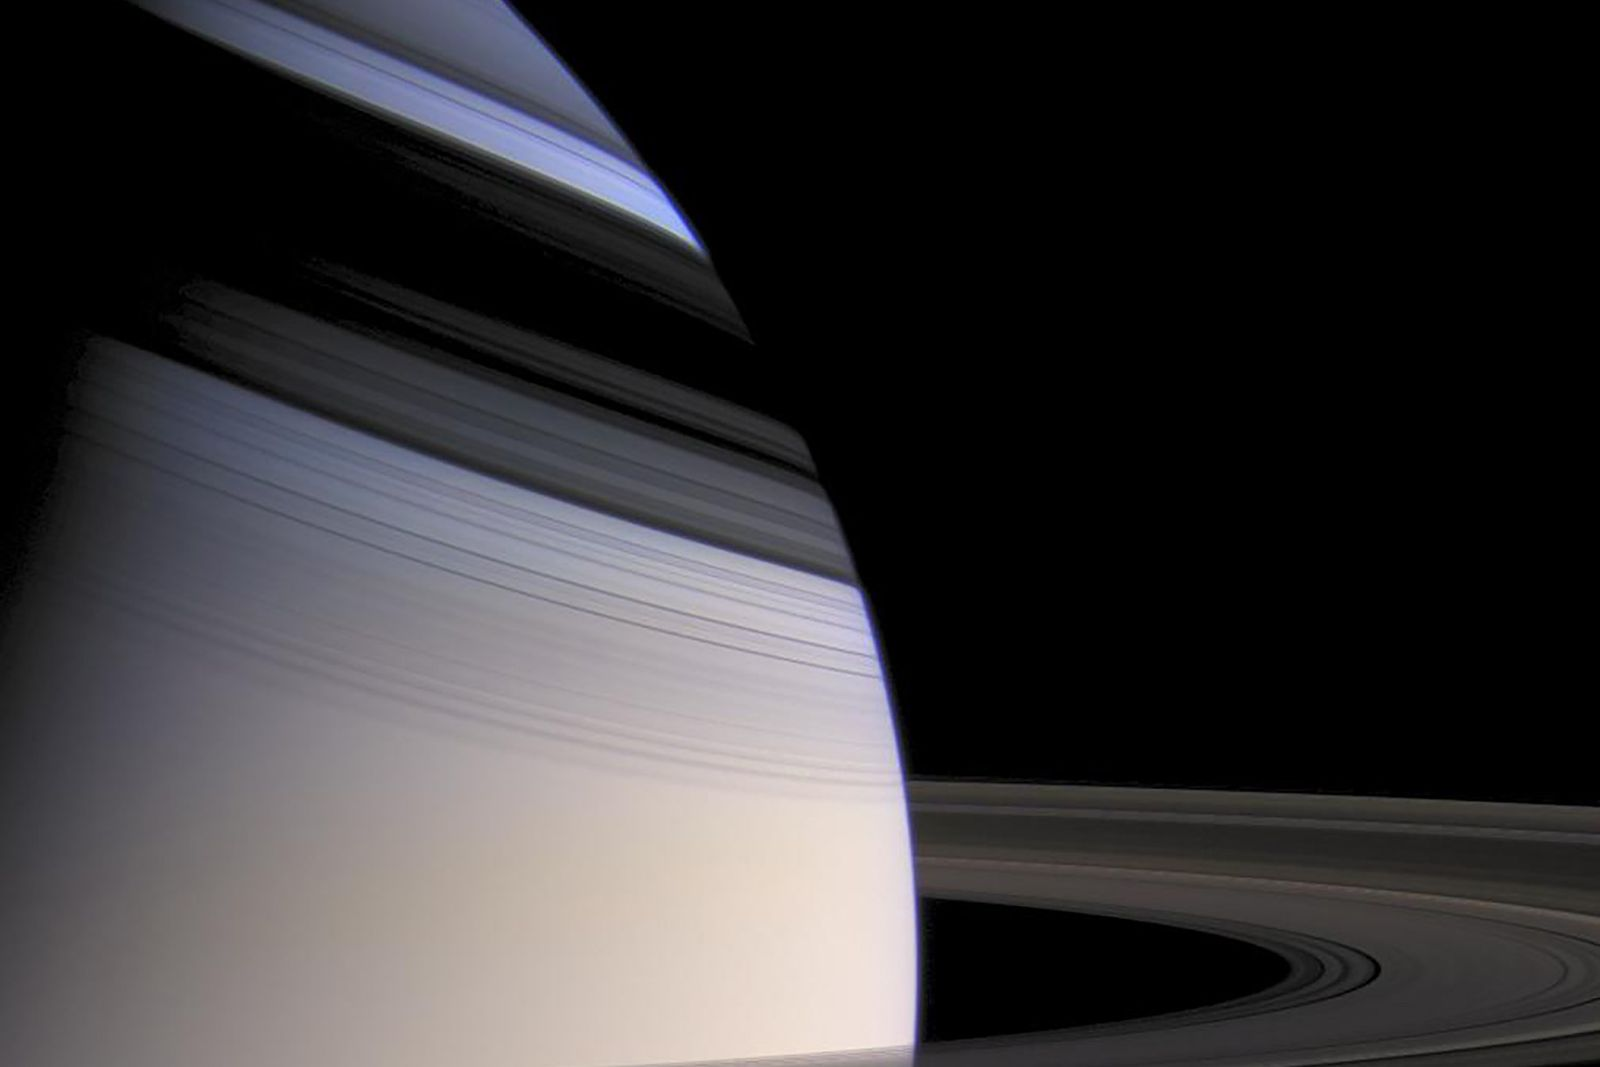 Cassini took this portrait of Saturn embraced by the shadow of its stately rings.